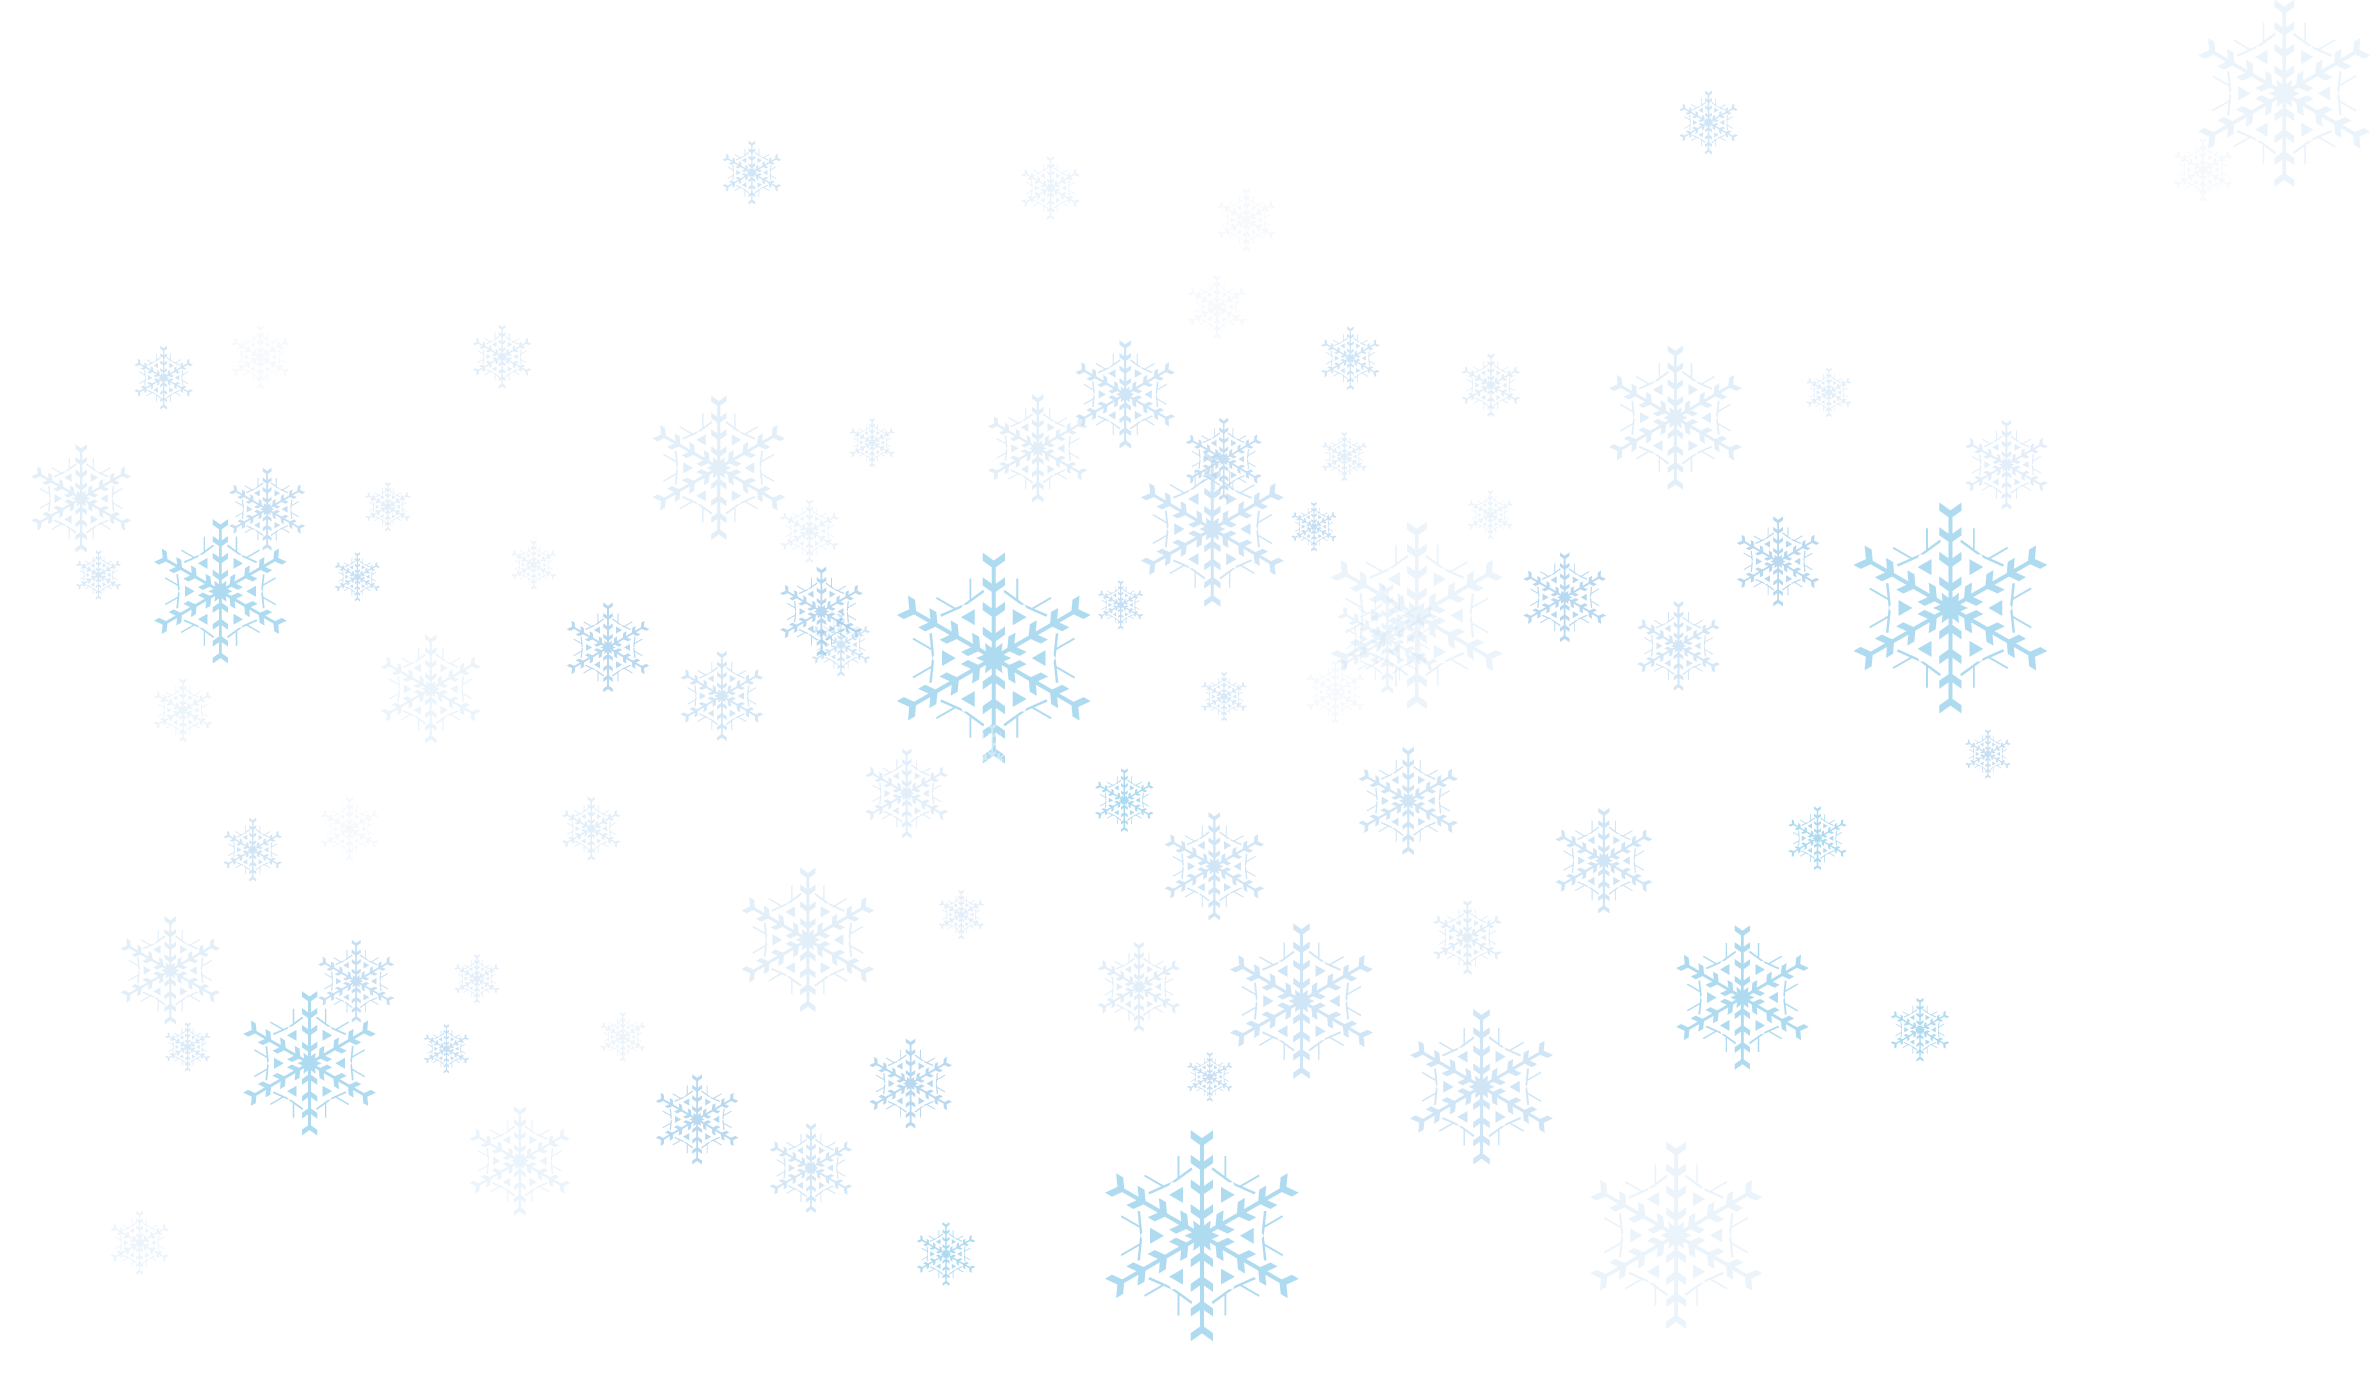 Snow transparent. Snowflake png no background